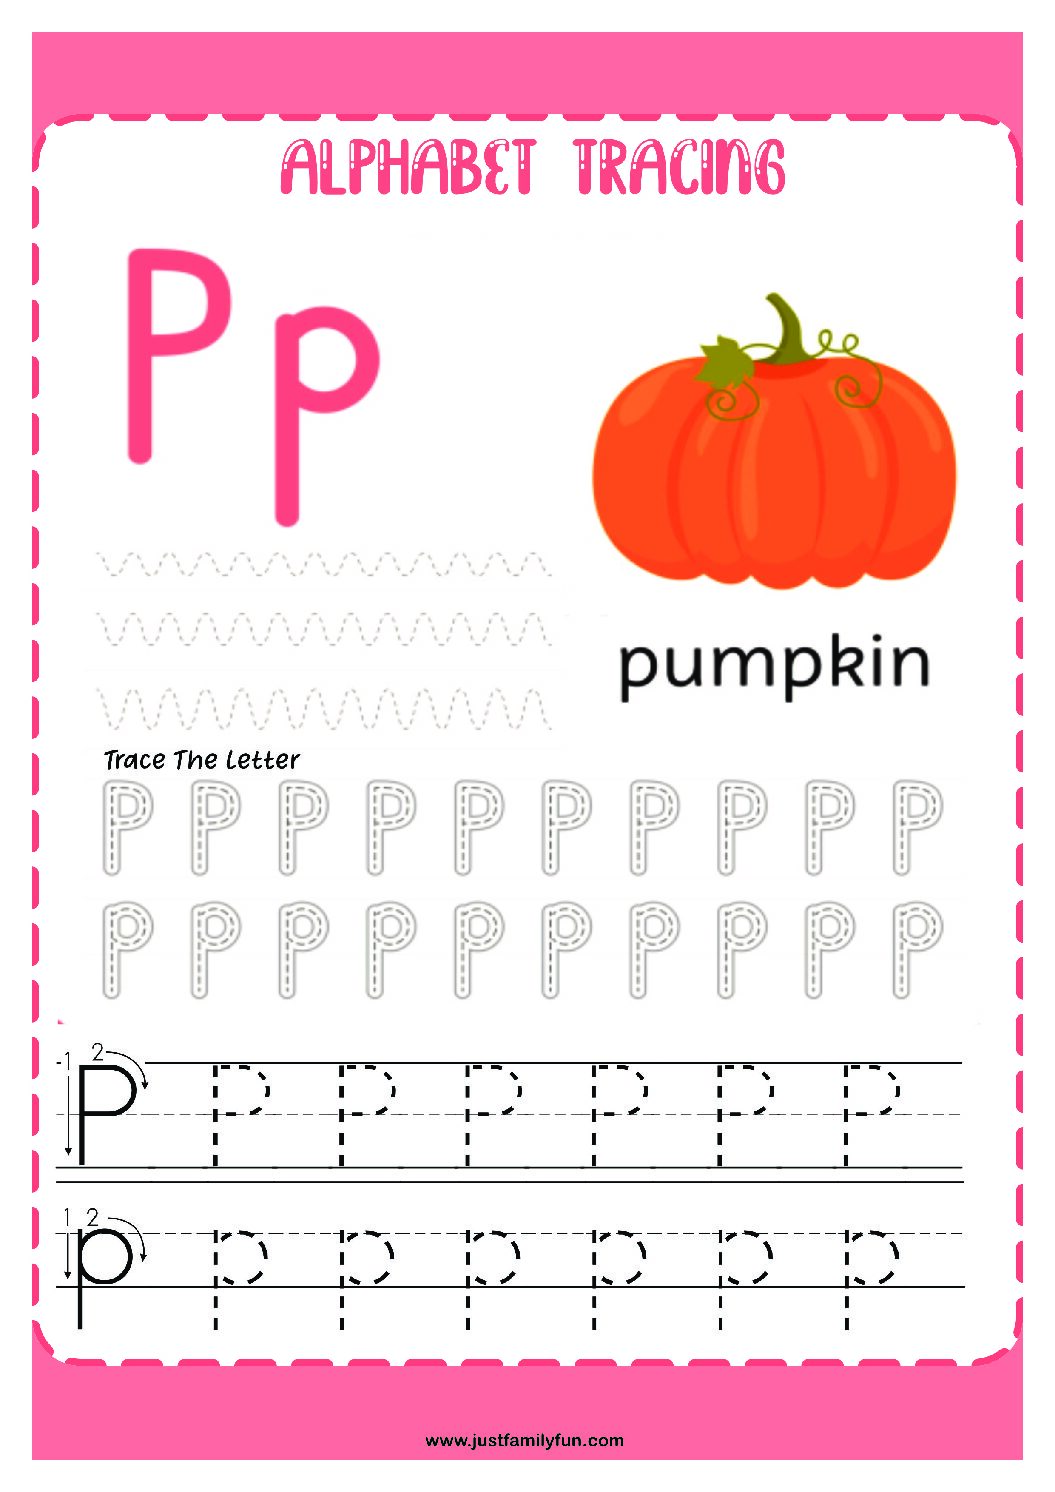 Alphabets_16-pdf Free Printable Trace The Alphabet Worksheets for Kids.